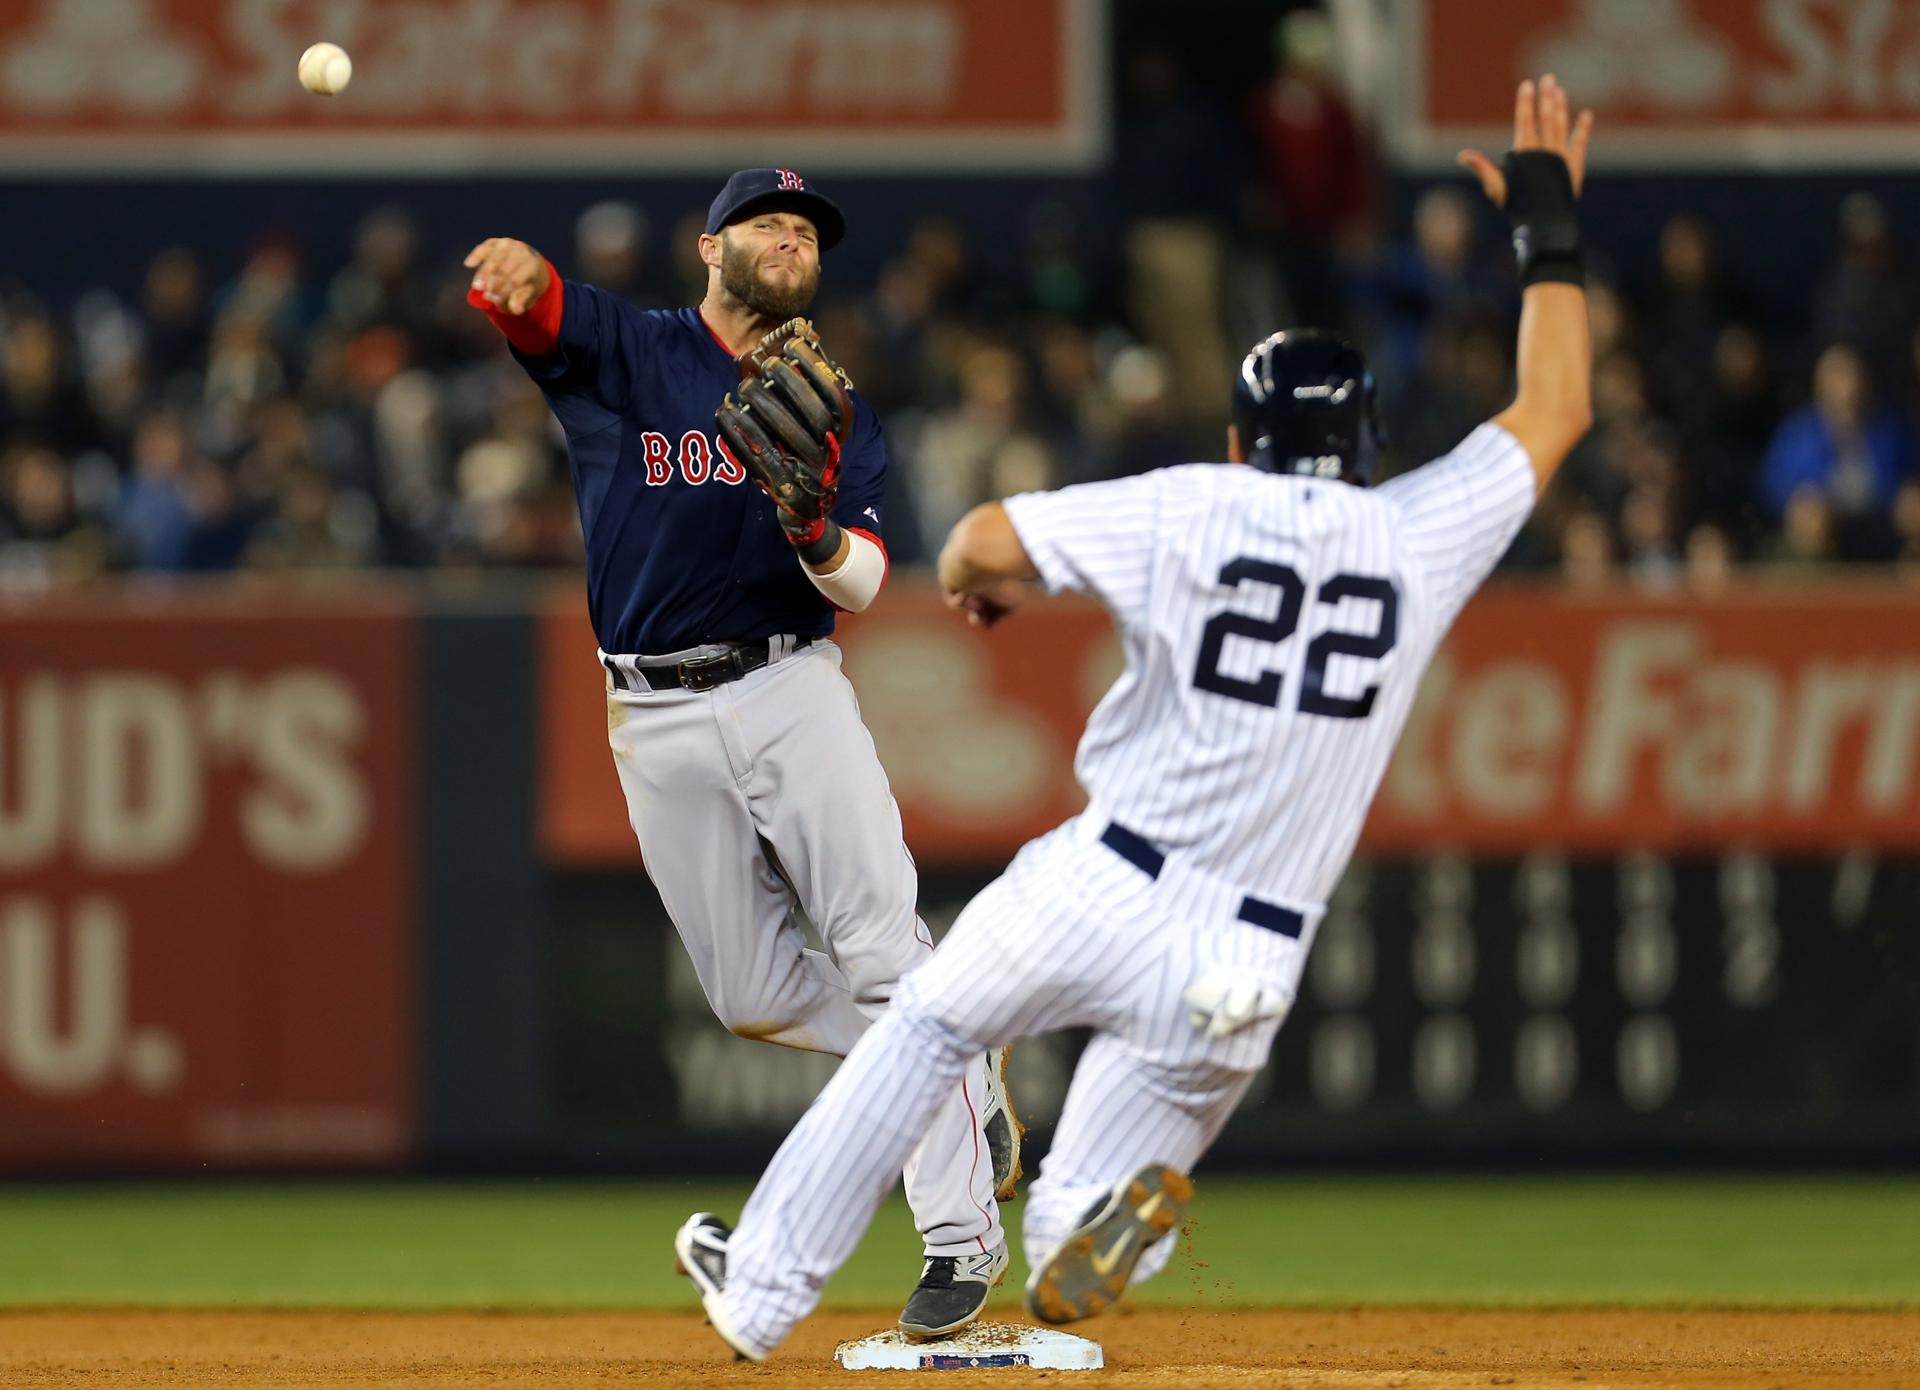 Red Sox second baseman Dustin Pedroia got the force out on Yankees outfielder Jacoby Ellsbury during the sixth inning.